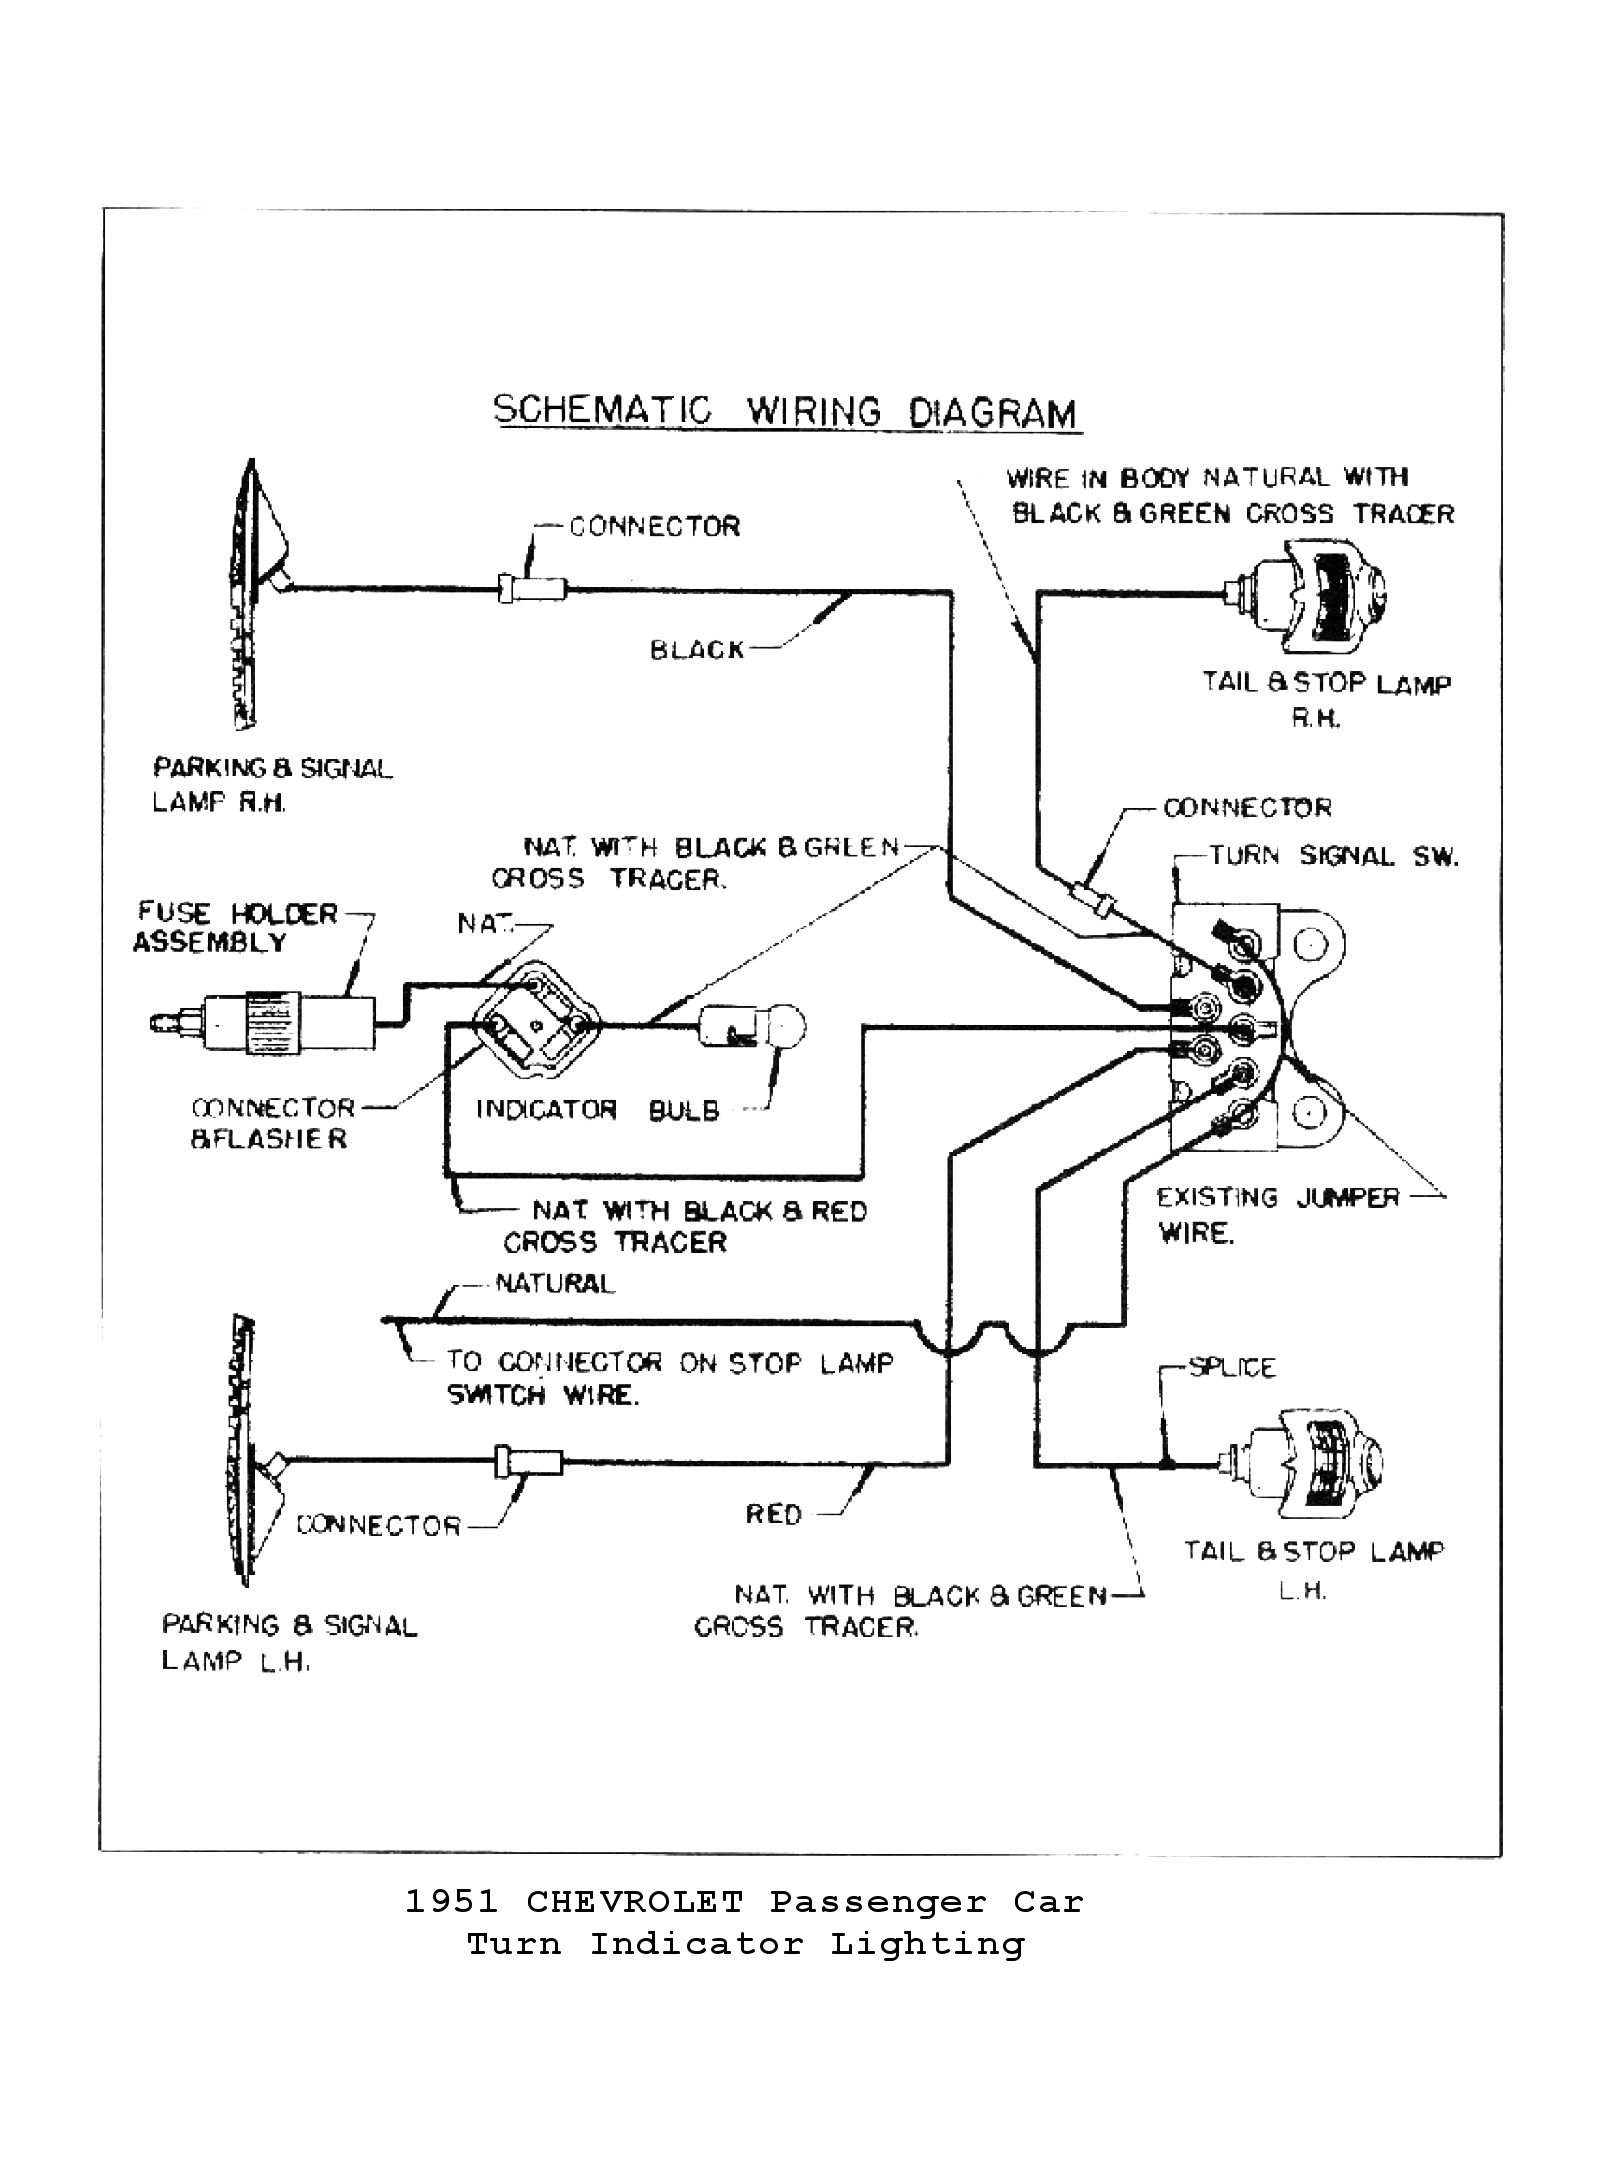 5152turnsignals chevy wiring diagrams 1953 chevy bel air wiring diagram at reclaimingppi.co